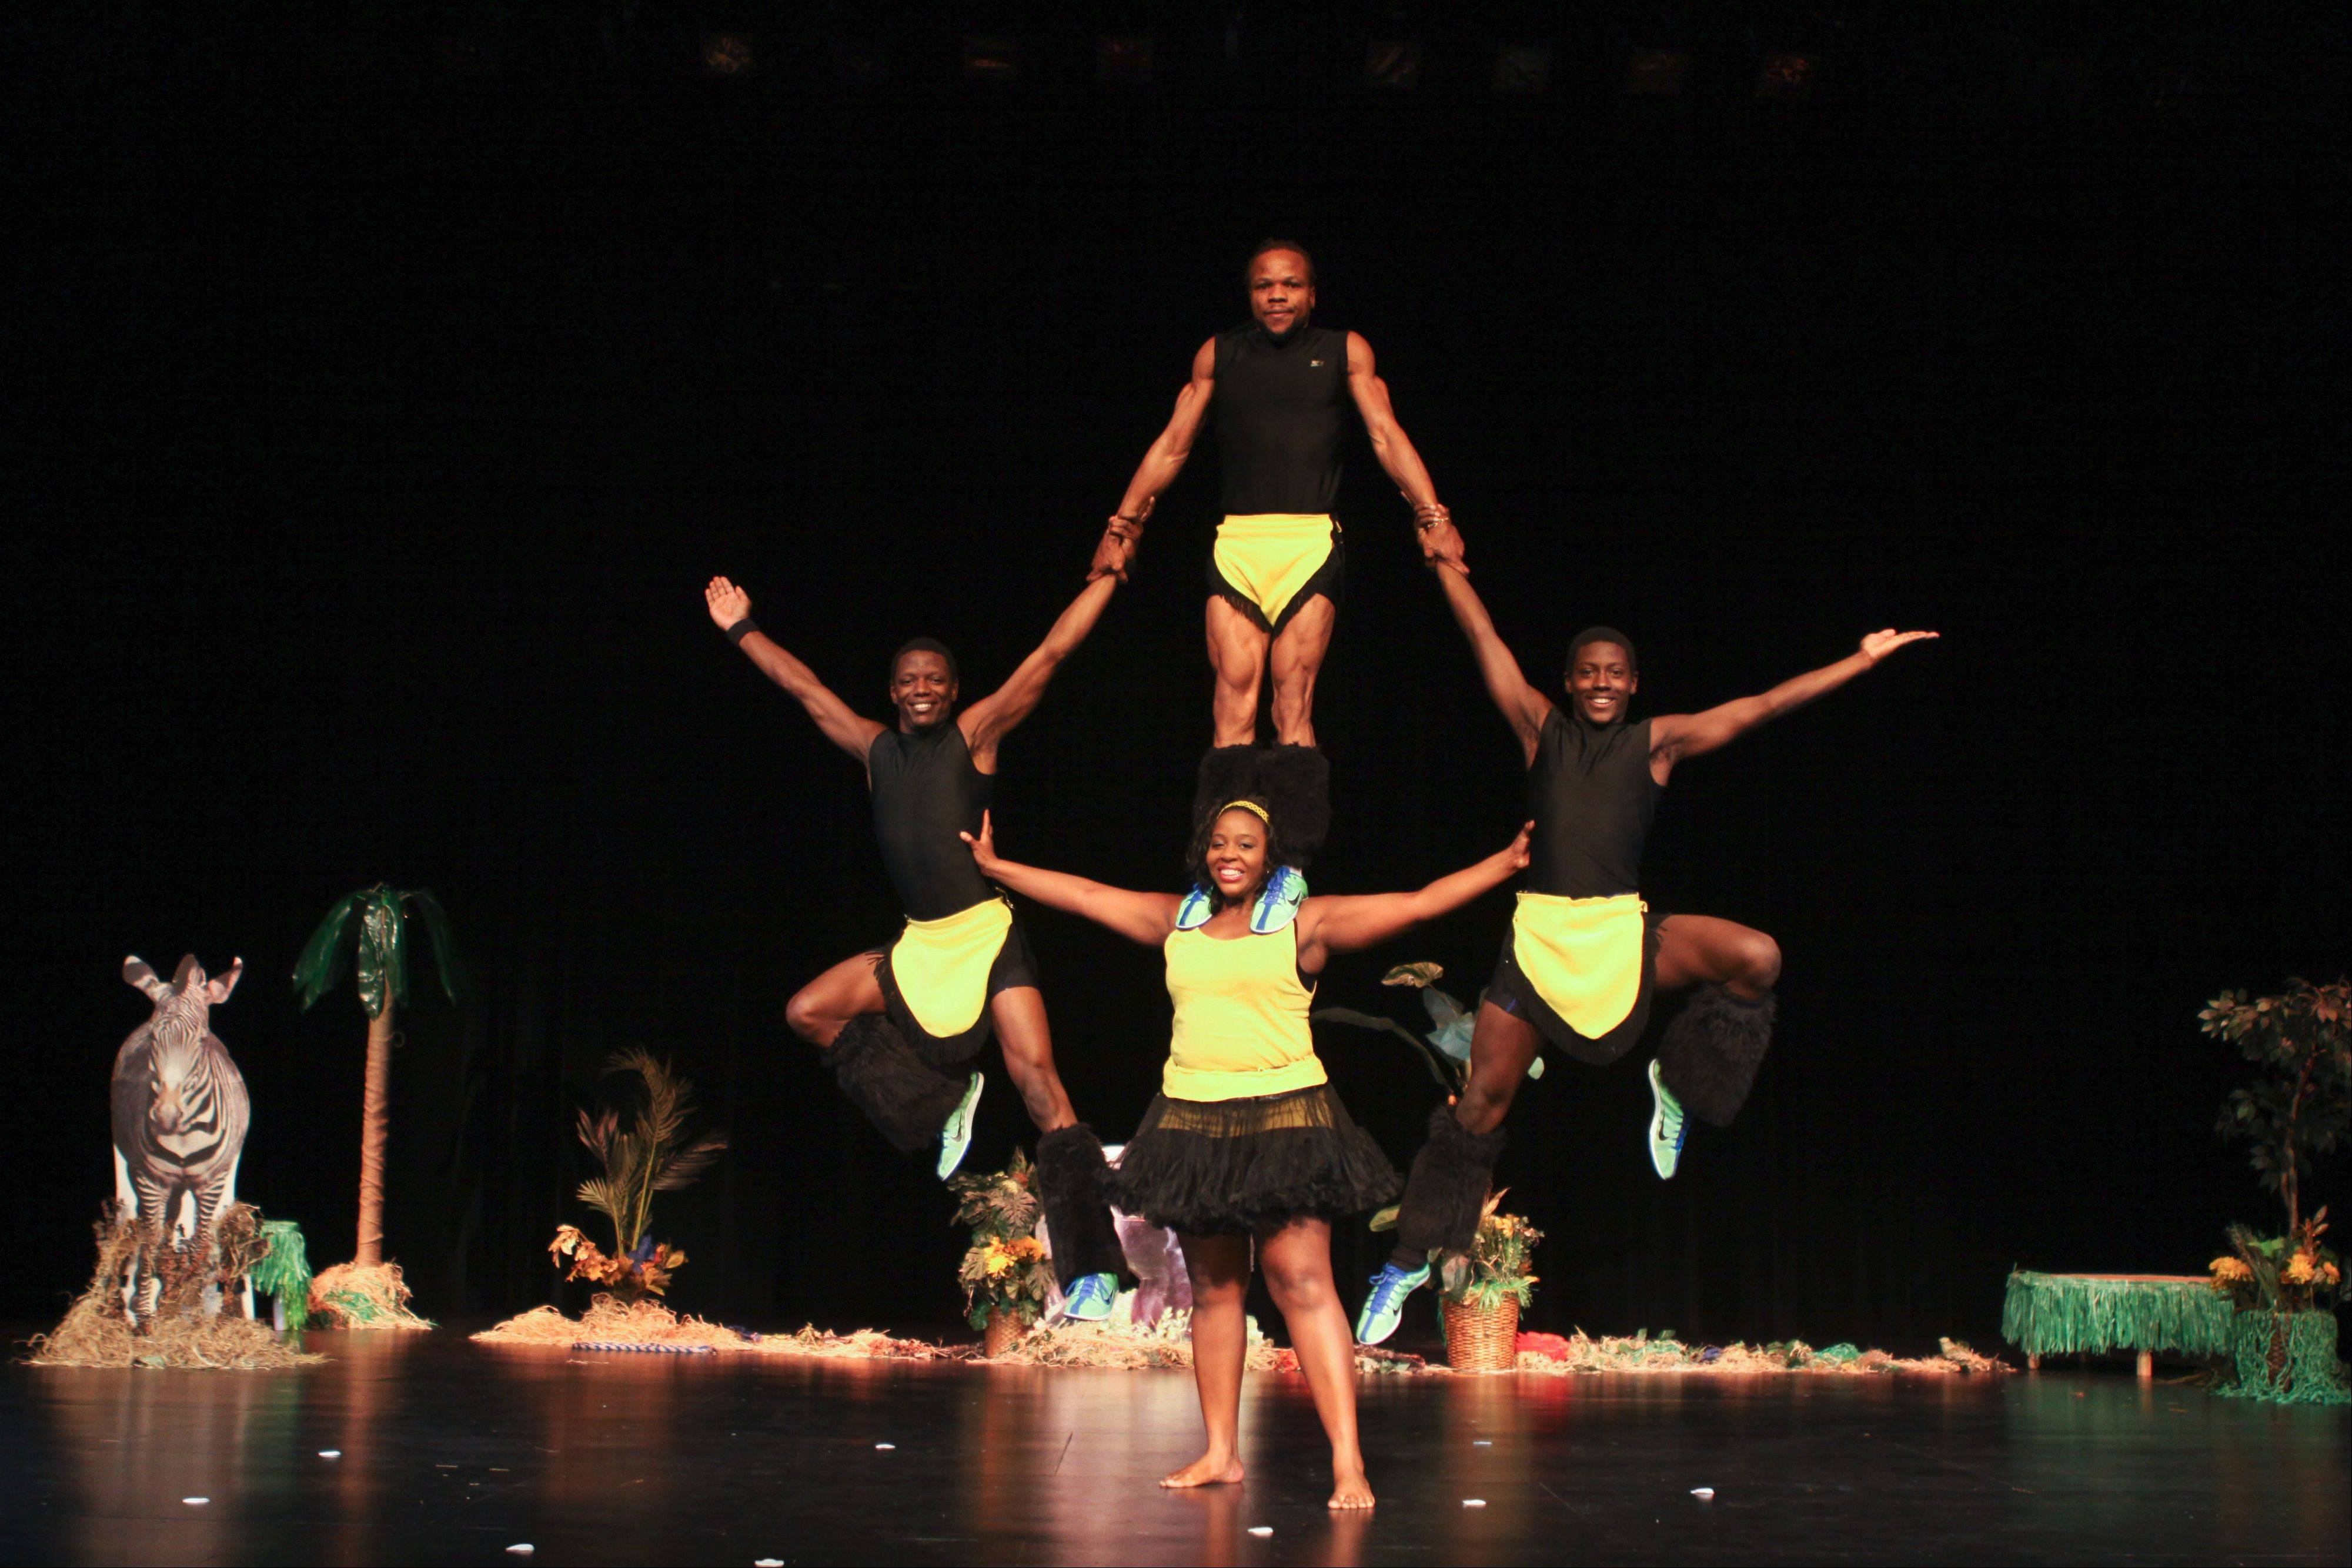 A human pyramid is just one of the incredible stunts that will be performed by the Kenya Safari Acrobats on Tuesday, Feb. 4, at Harper College.